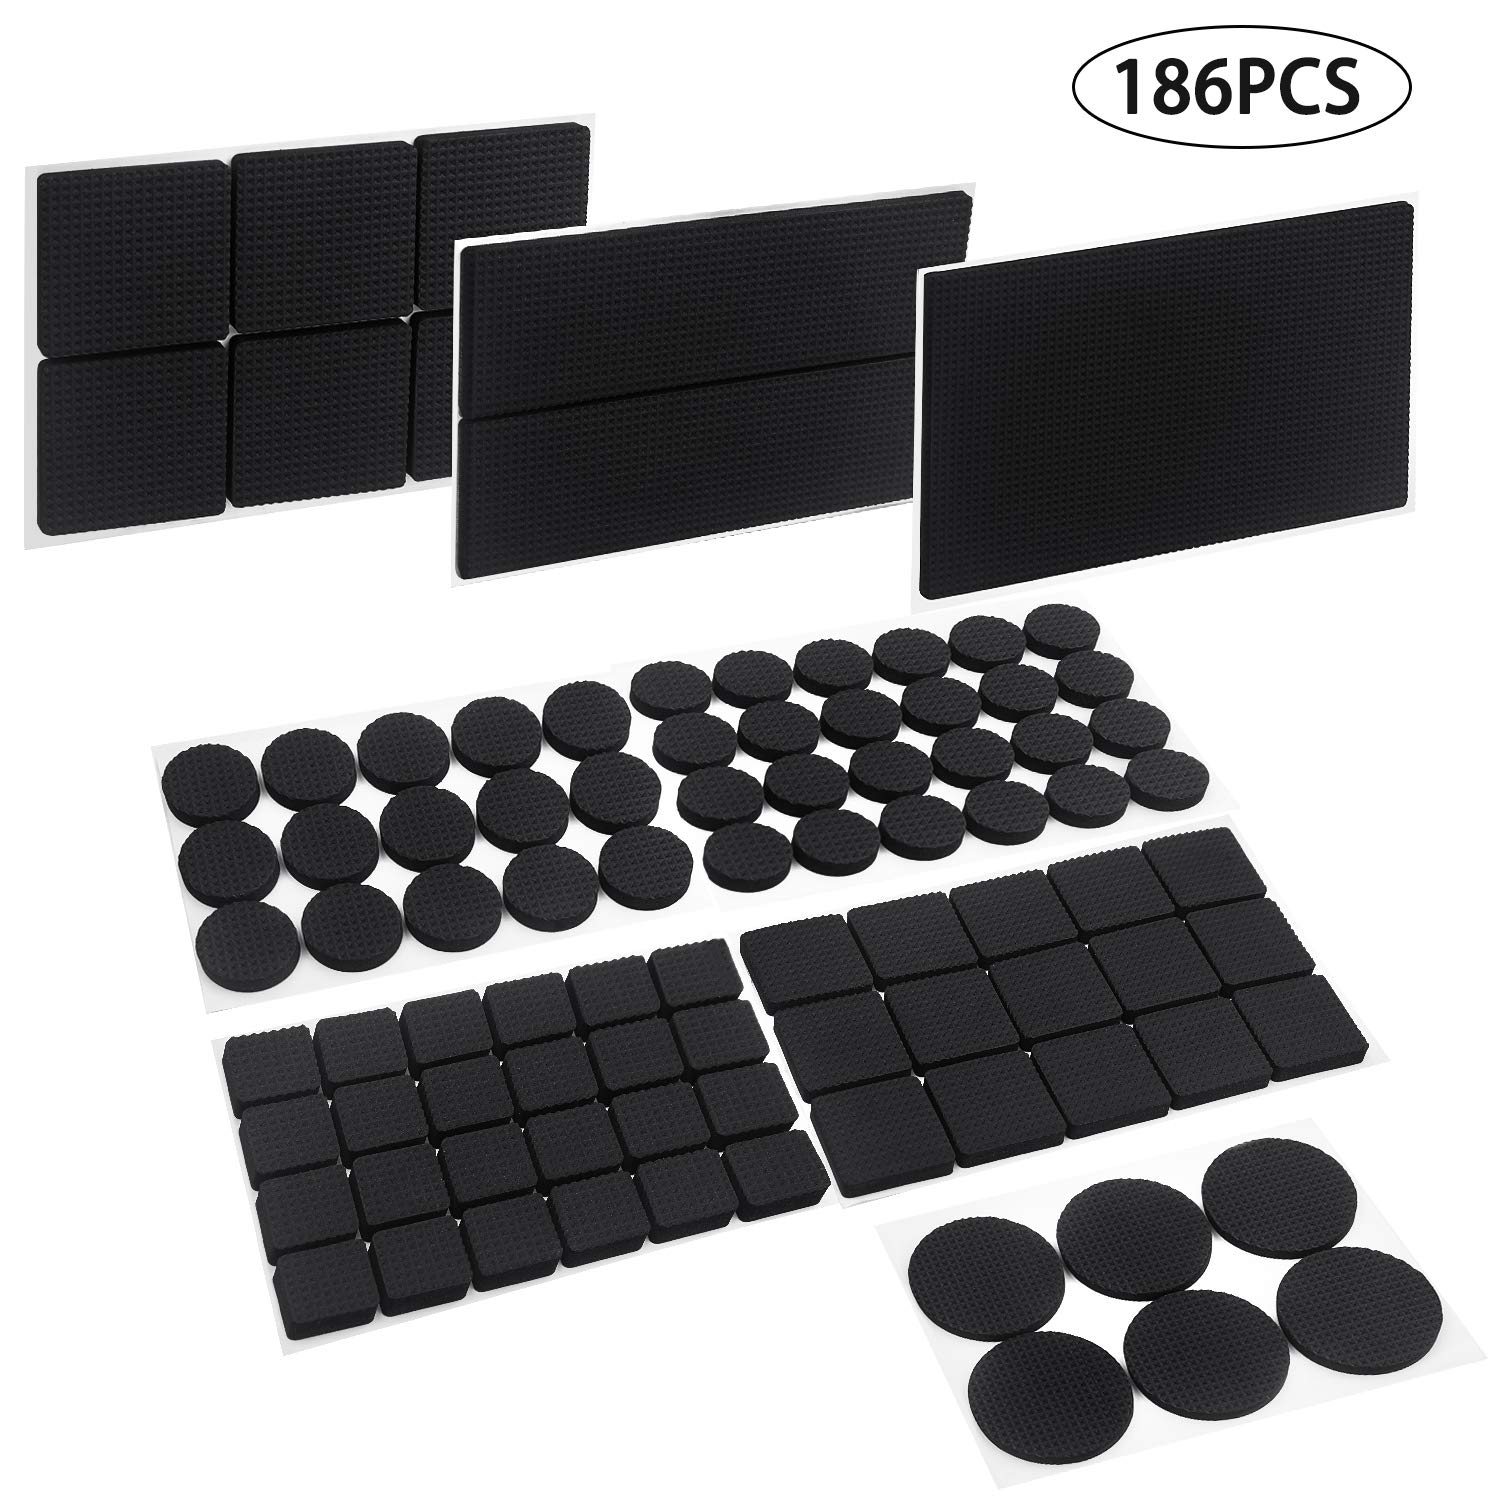 Furniture Pad,QcoQce Non Slip Skip Furniture Gripper,Rubber Feet Round Square Rectangle 186-Pieces Self-Adhesive Heavy Duty Pads and Hardwood Floor Protectors for Anti-Scratch